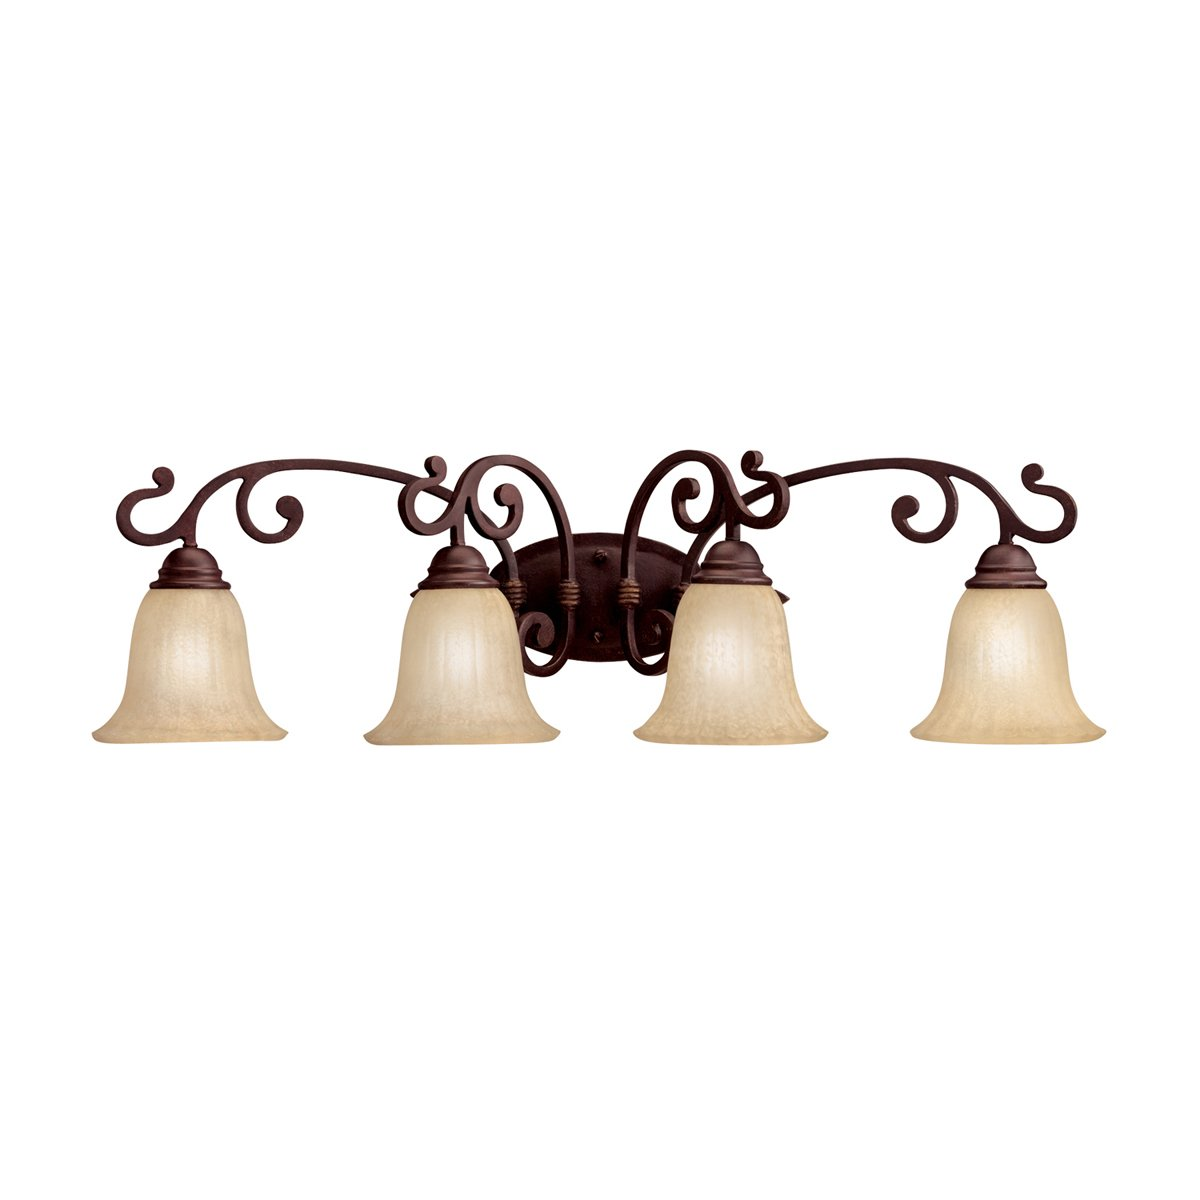 kichler 5990cz wilton bath 4 light carre bronze vanity lighting